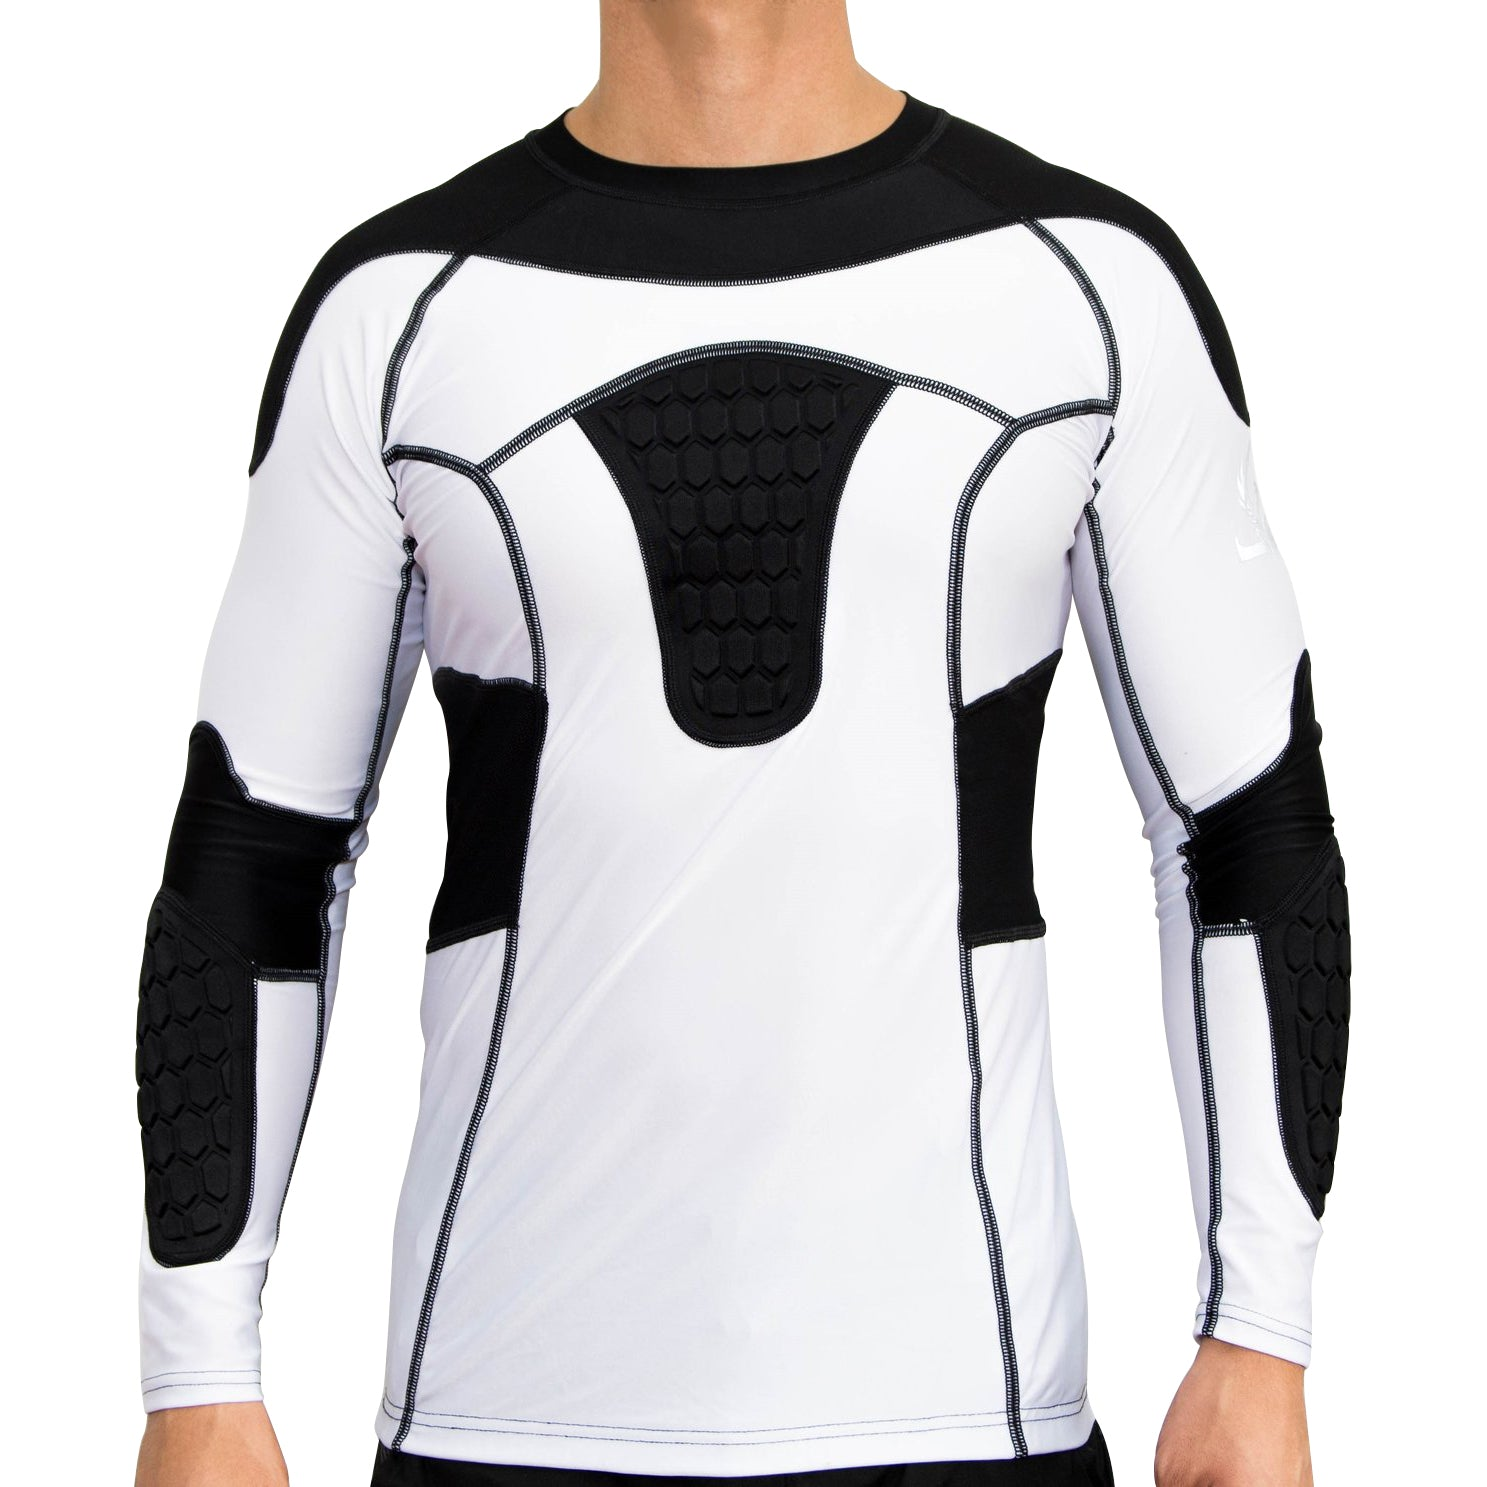 Limited Edition Padded Compression Shirt